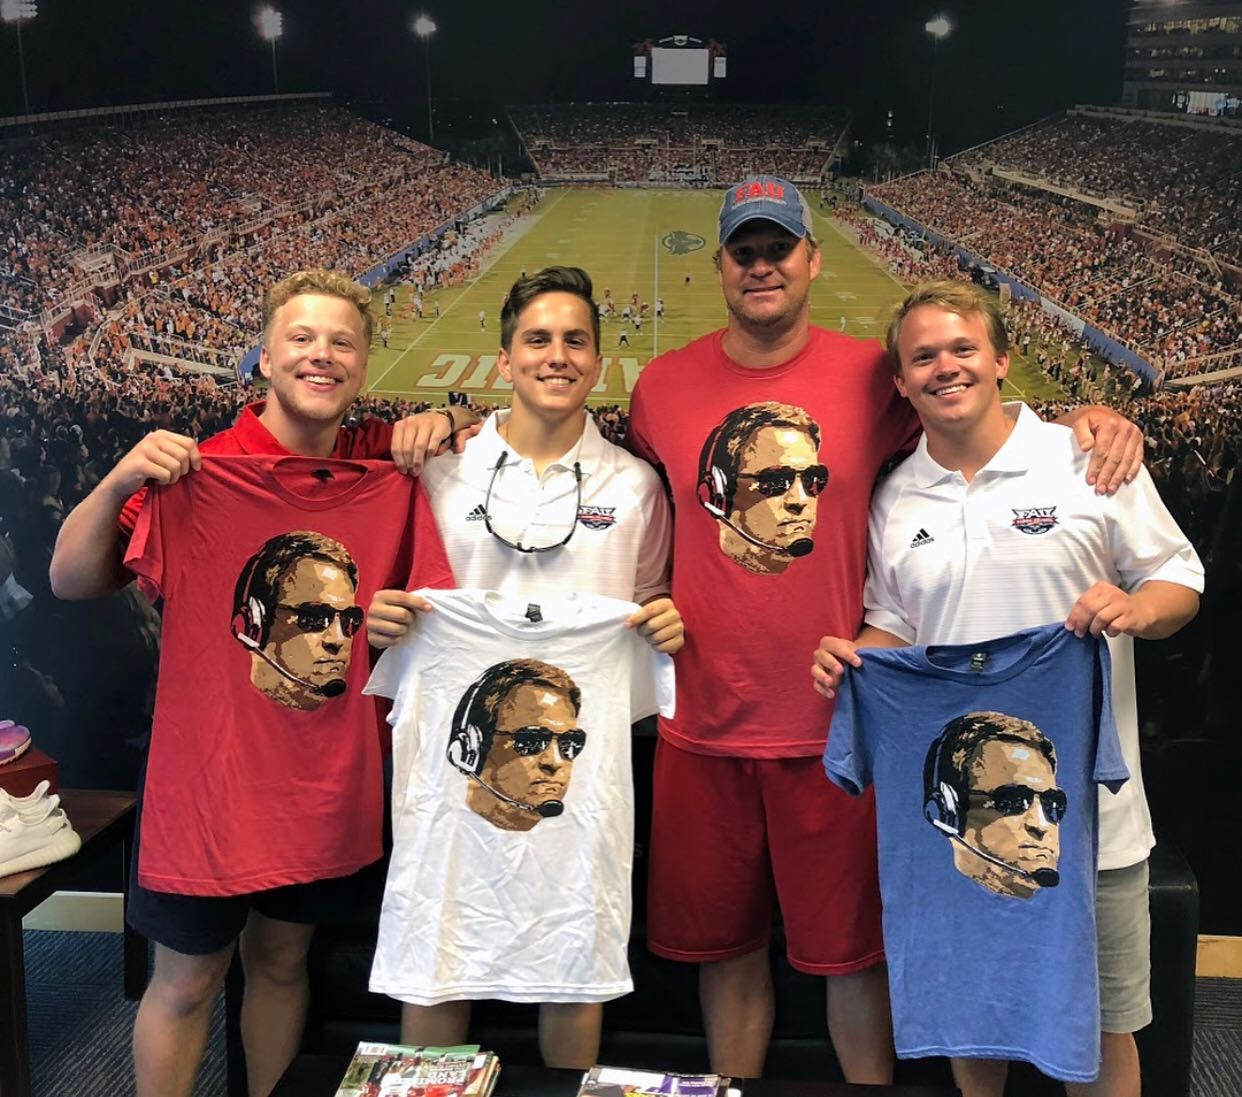 Kiffin (center right) poses with fans. Photo courtesy of Head Coach Tees on Instagram